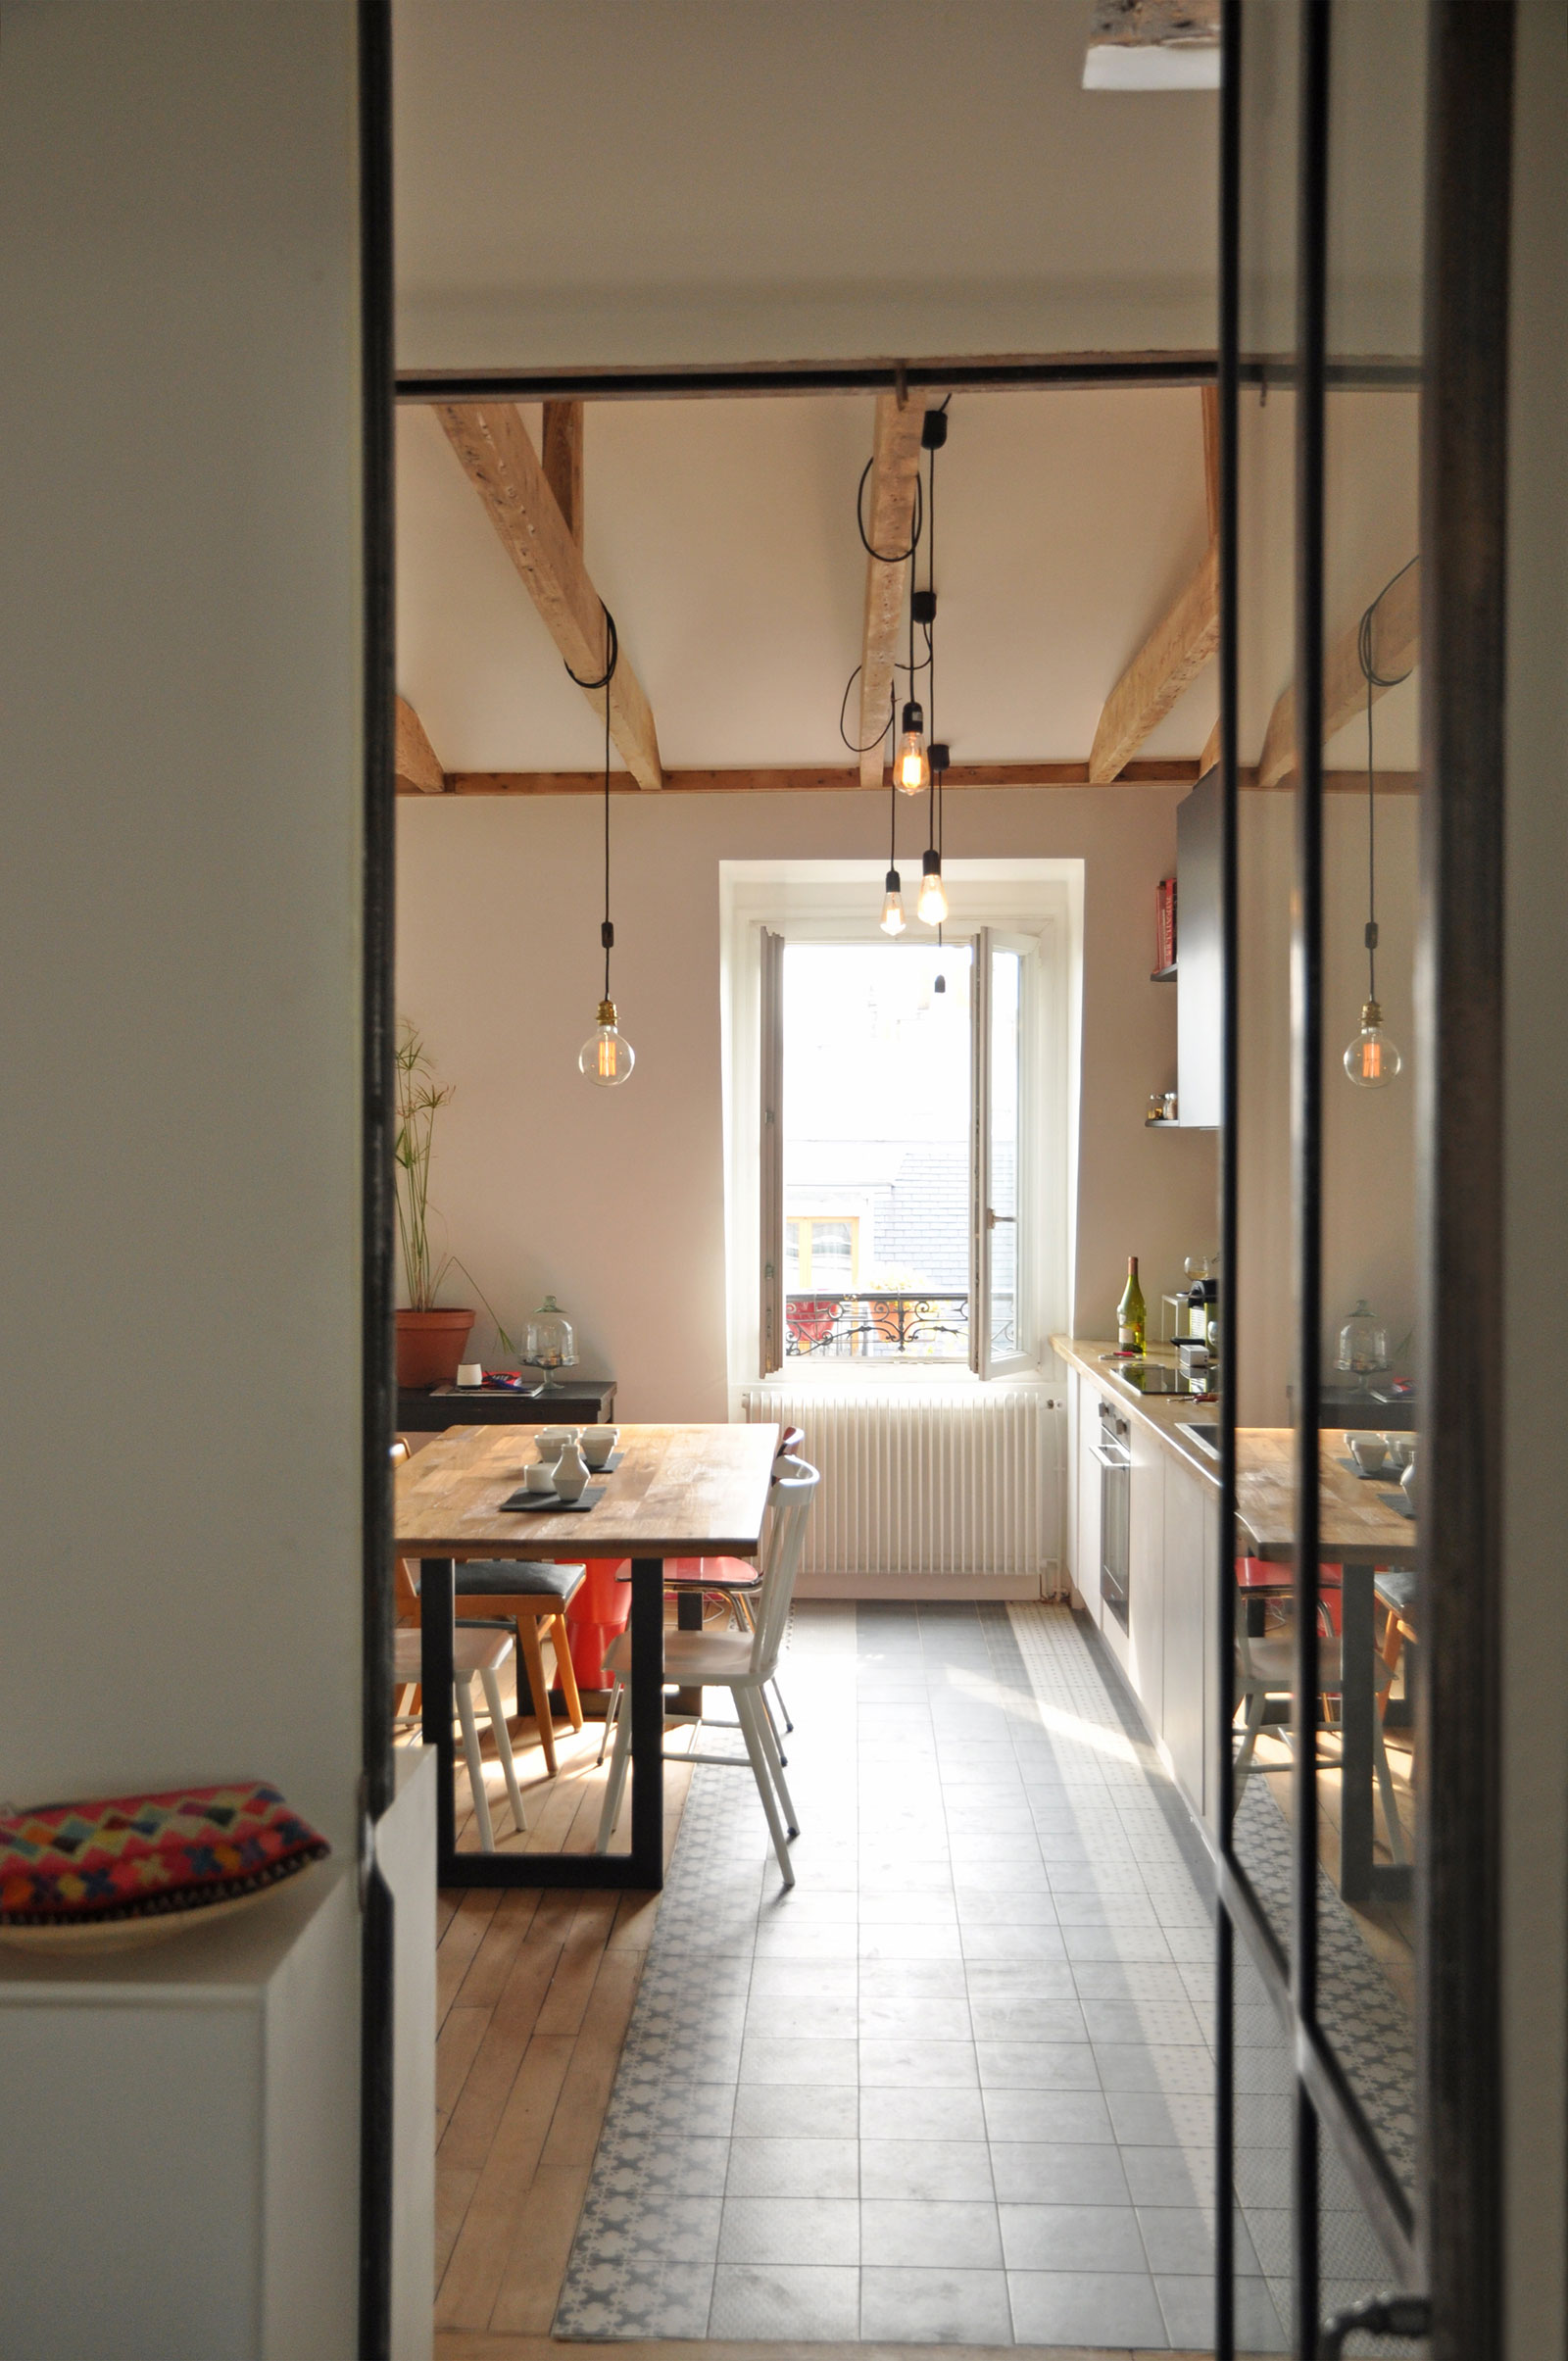 Renovation-of-an-Apartment-in-Paris-dining-kitchen